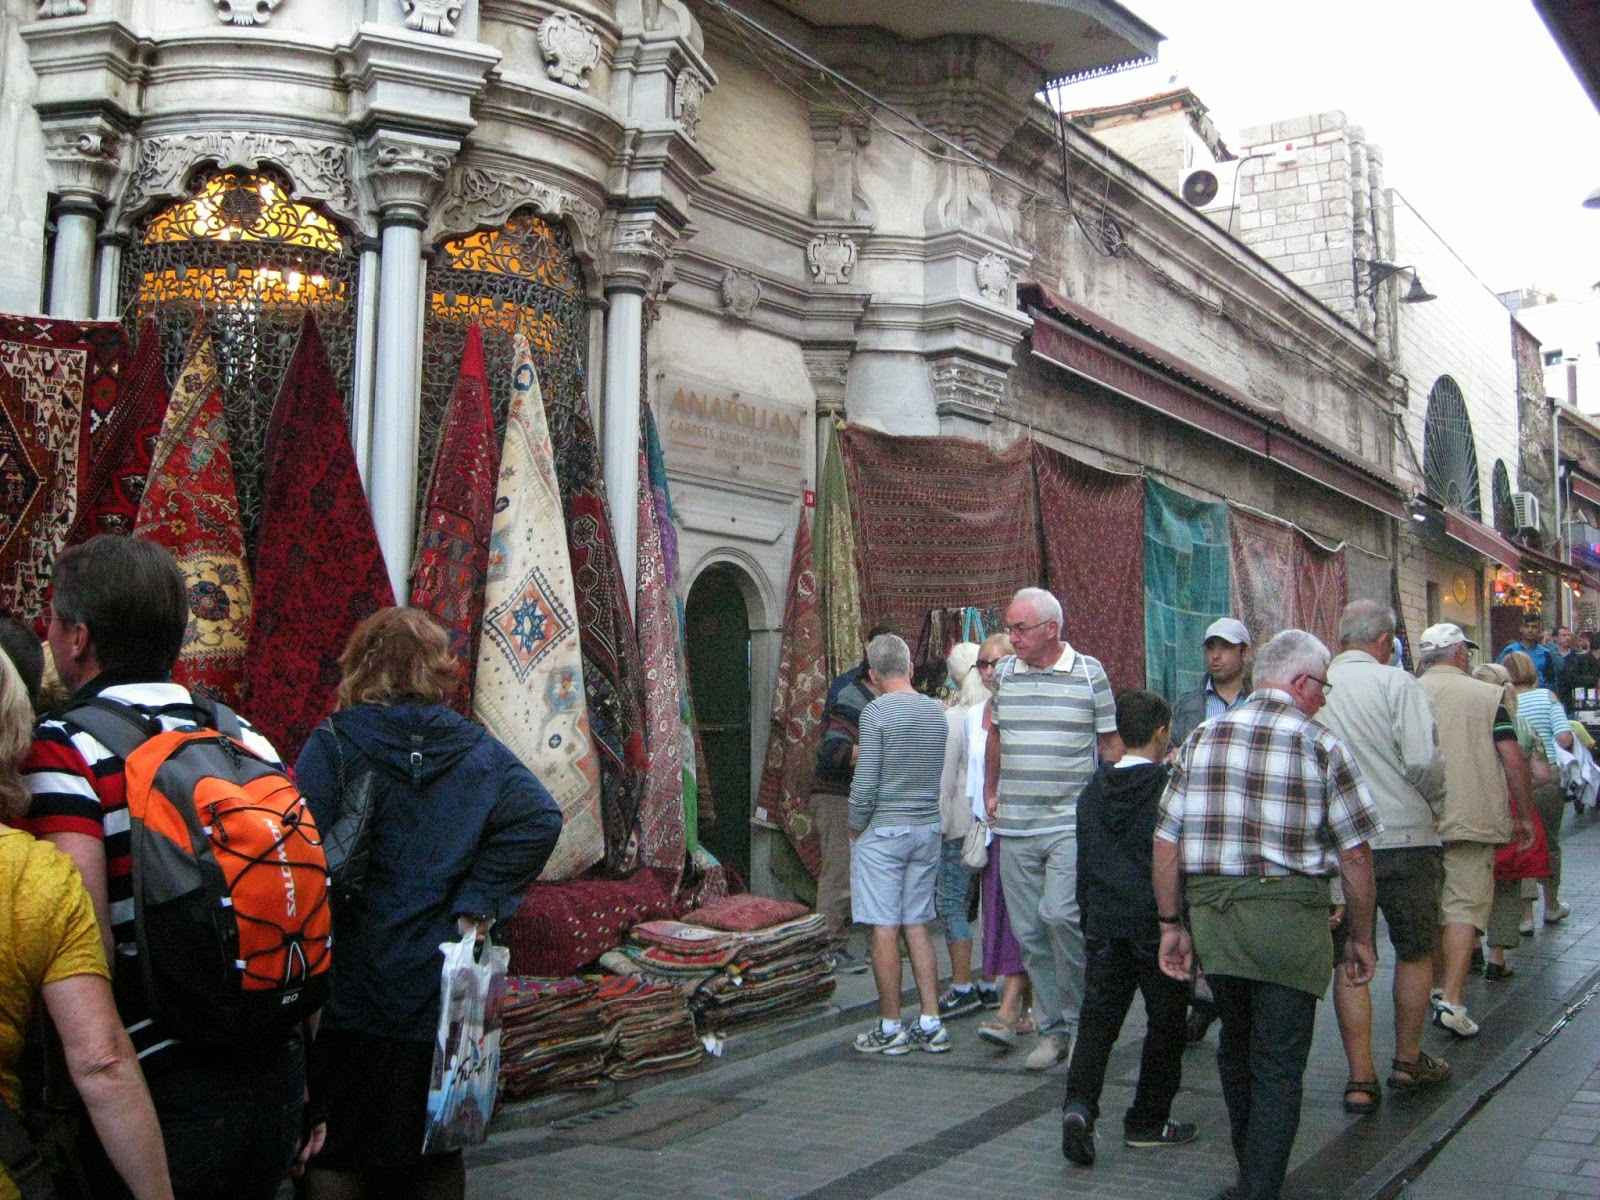 Istanbul - Market just outside the Grand Bazaar